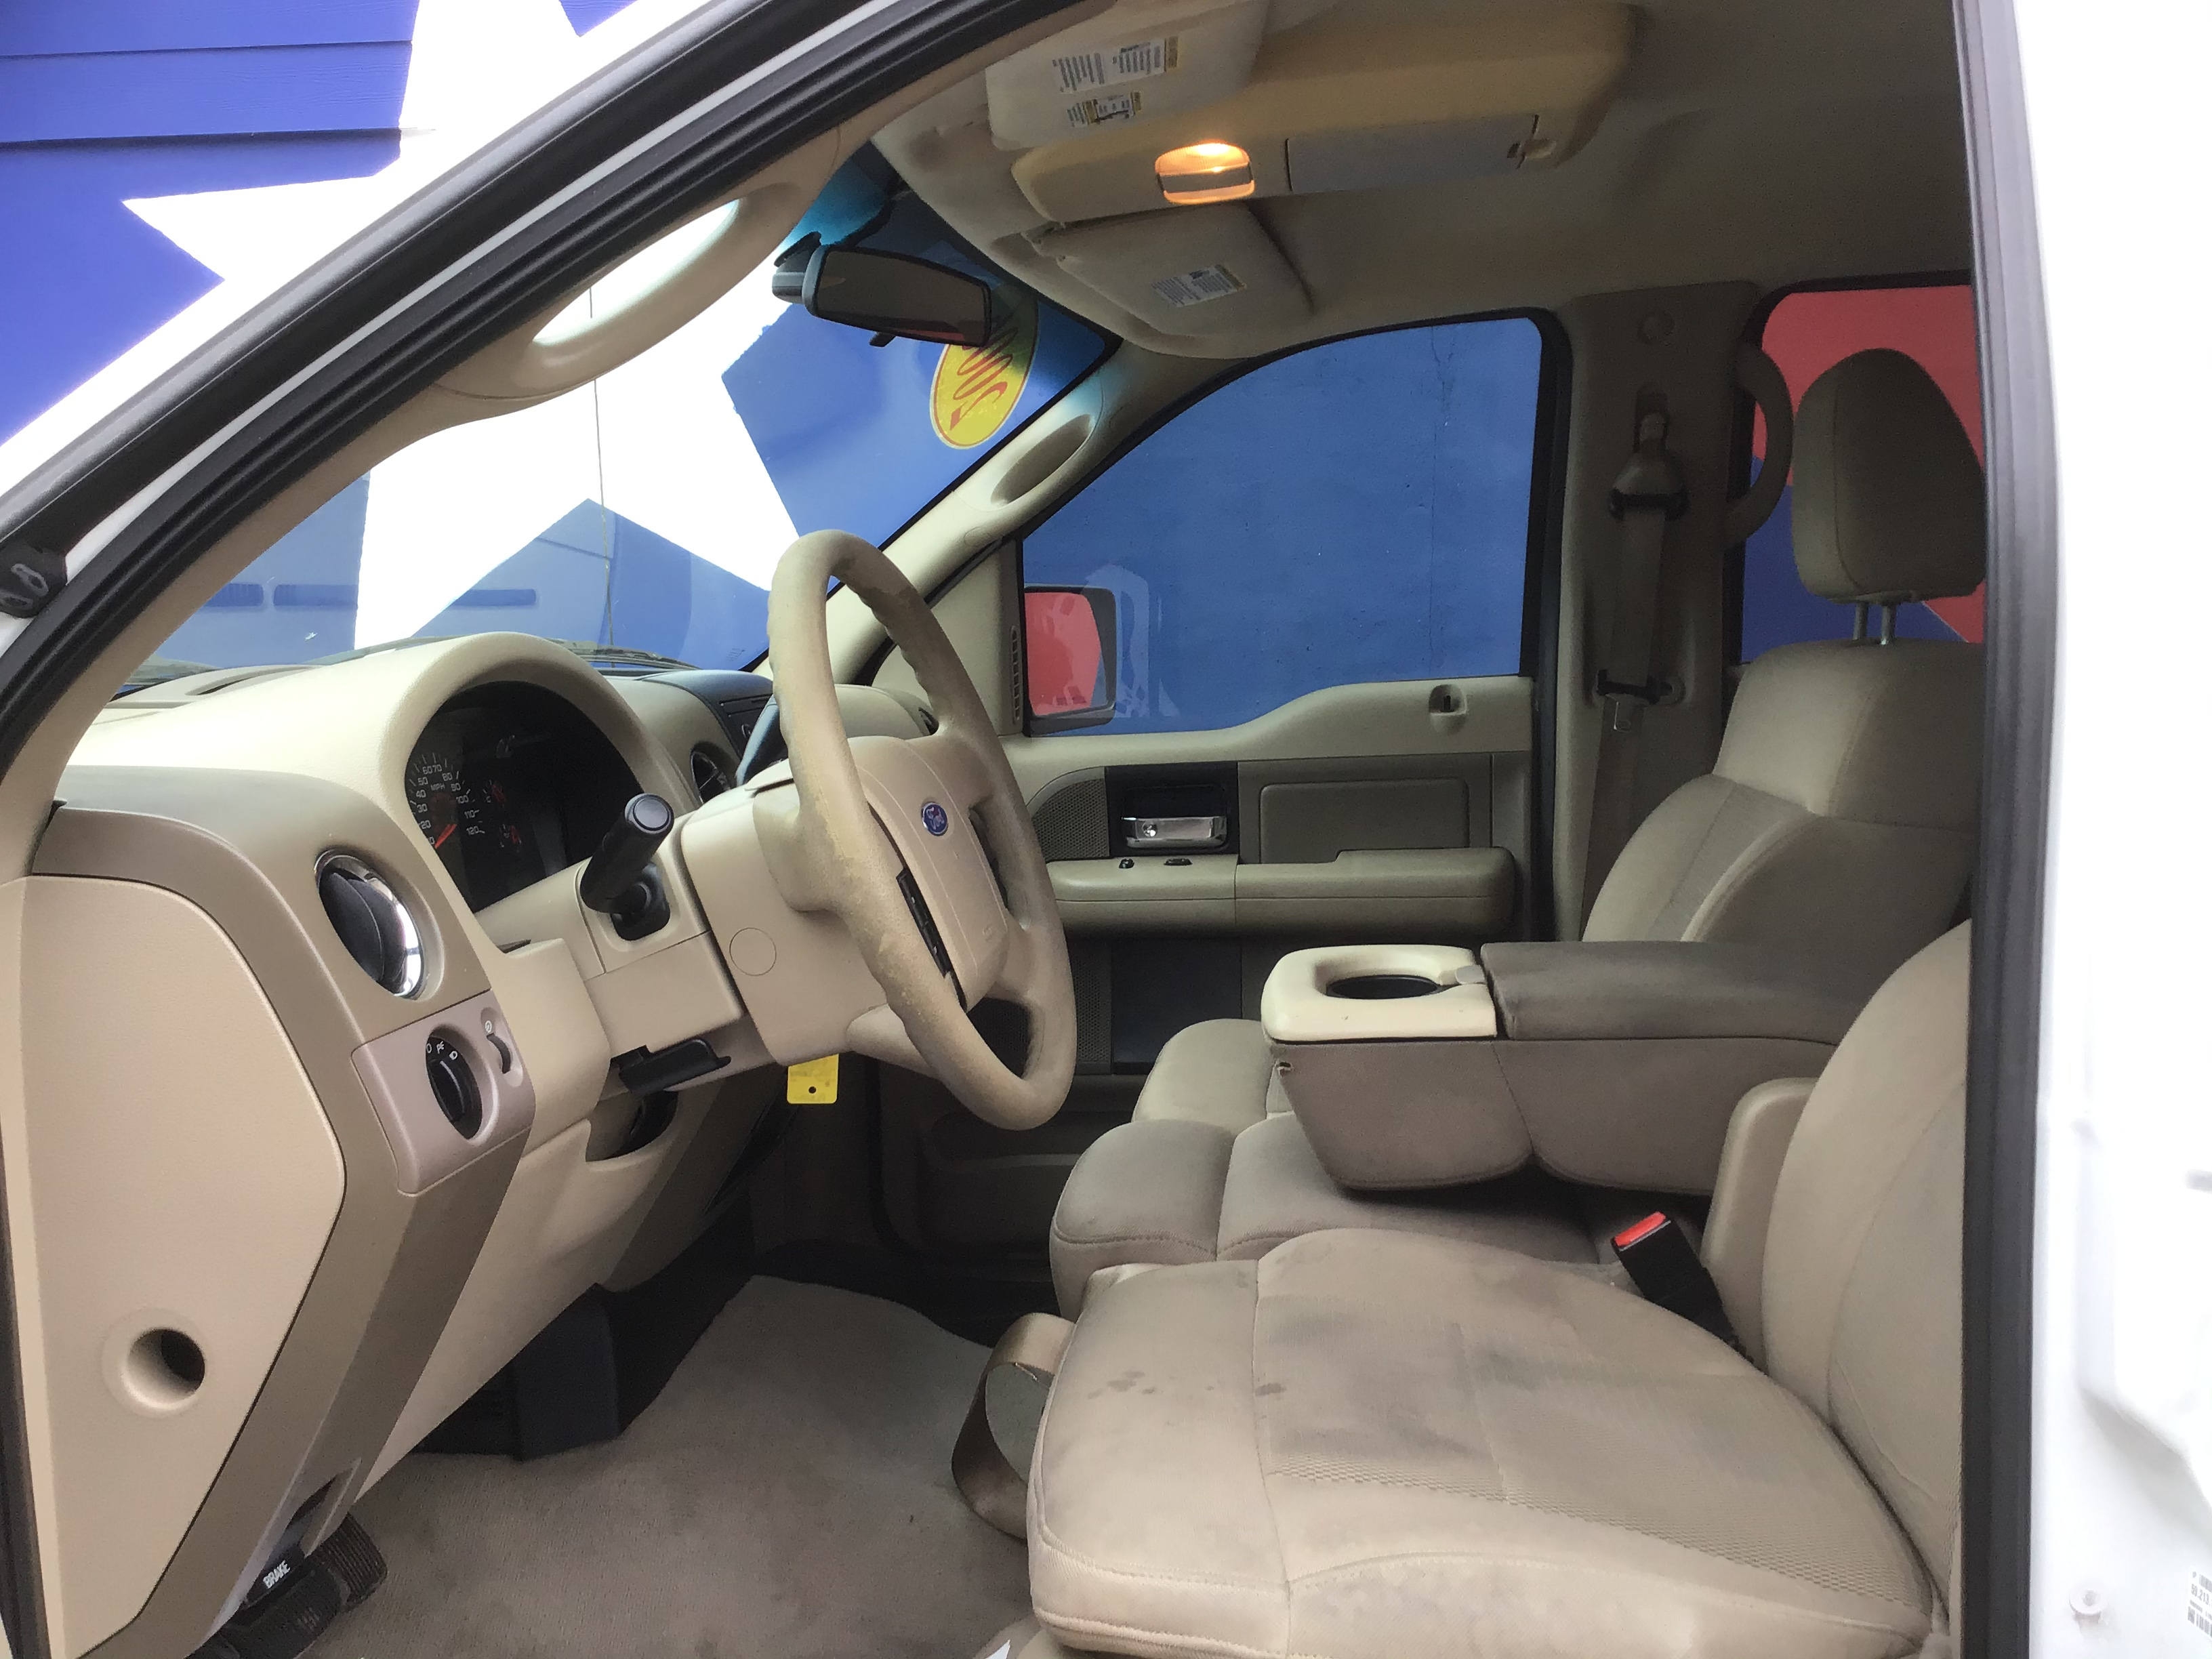 used vehicle - Truck FORD F-150 2006